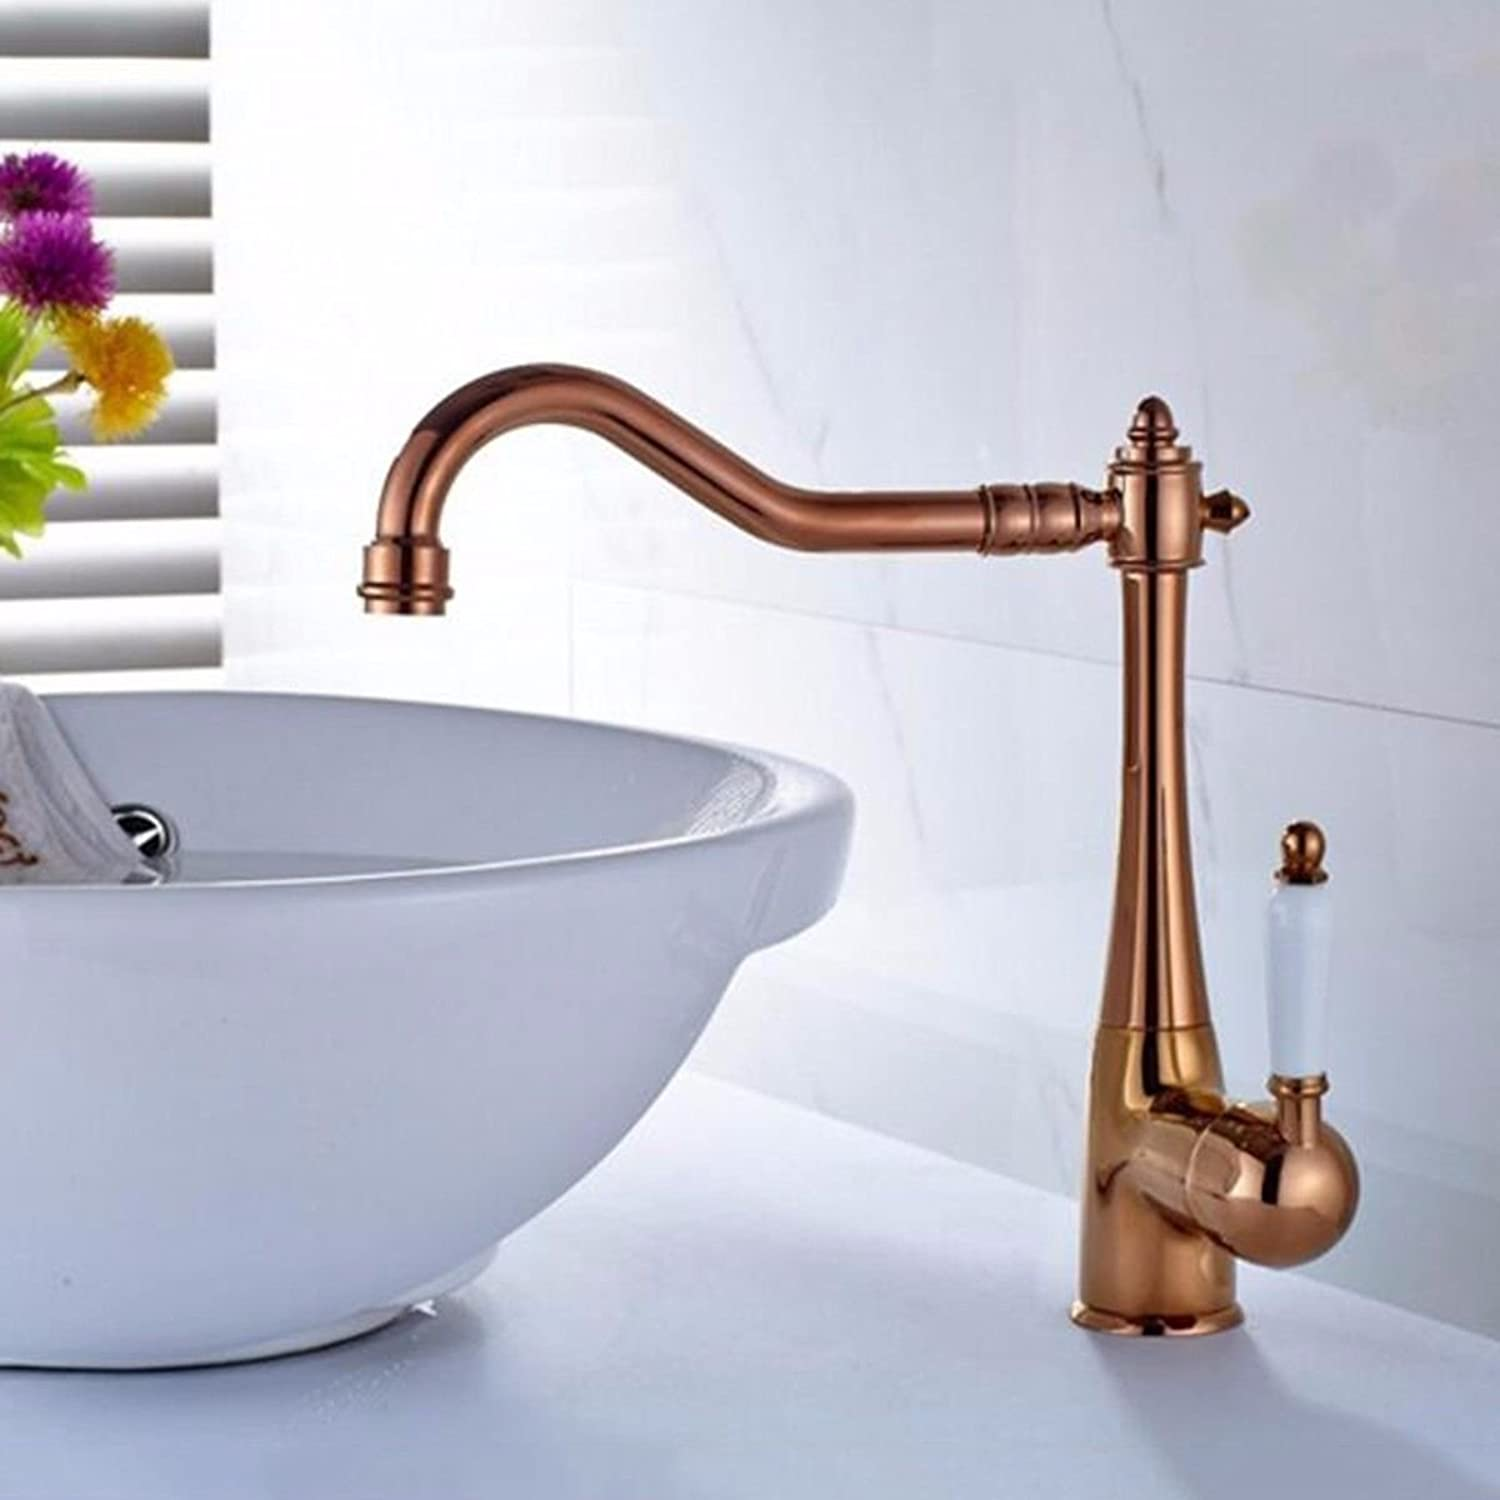 Hlluya Professional Sink Mixer Tap Kitchen Faucet The copper pink gold ceramic handle to redate the hot and cold water faucets antique